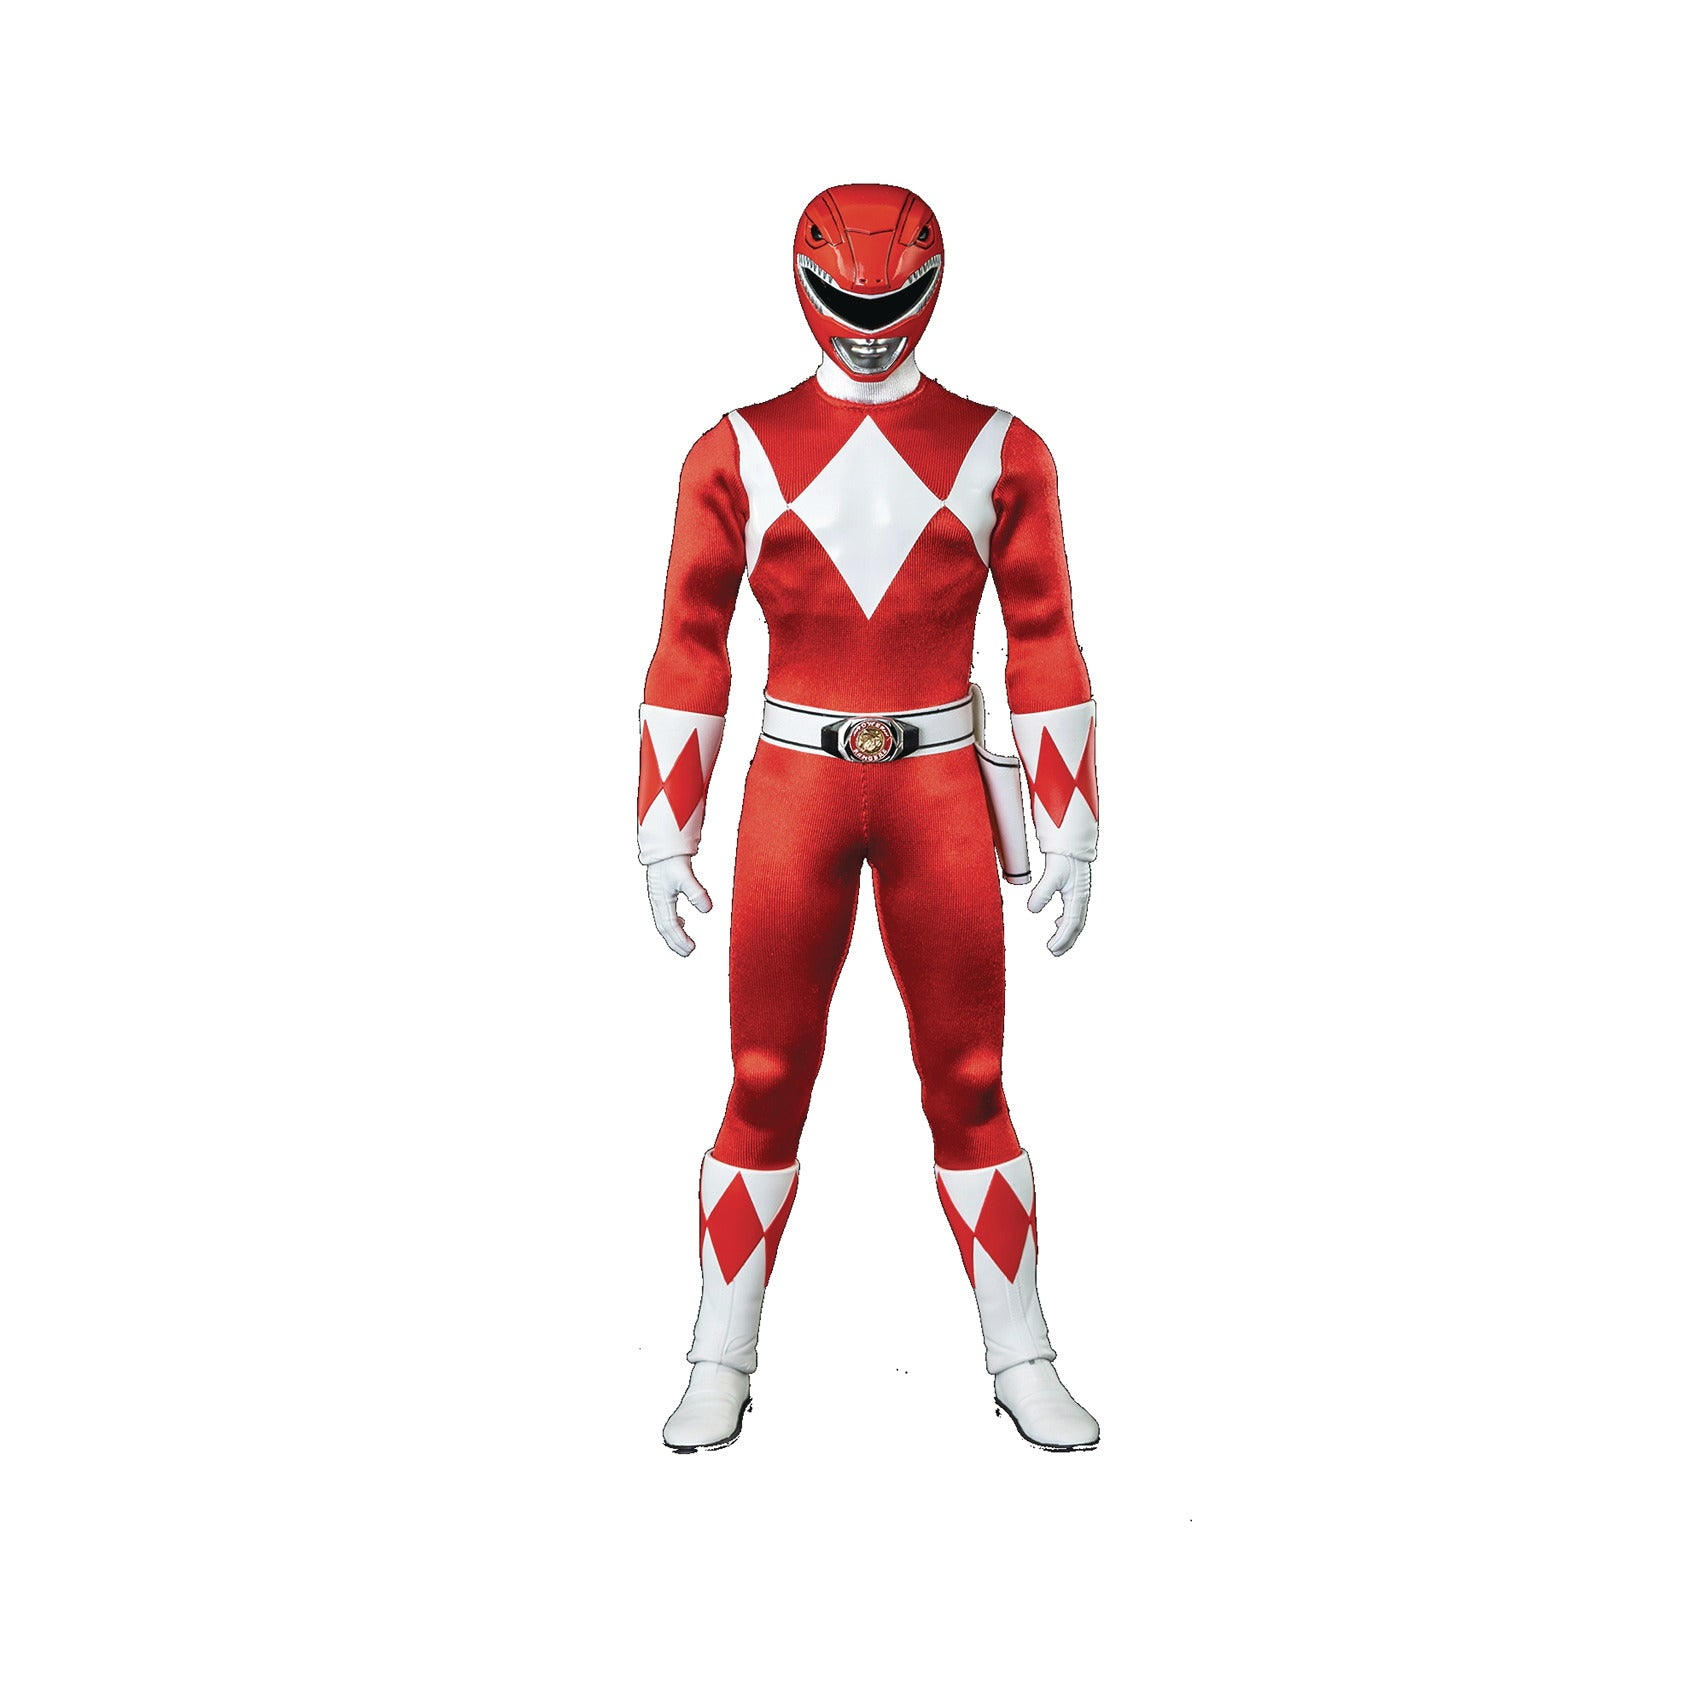 Mighty Morphin Power Rangers Red Ranger 1/6 Scale Action Figure